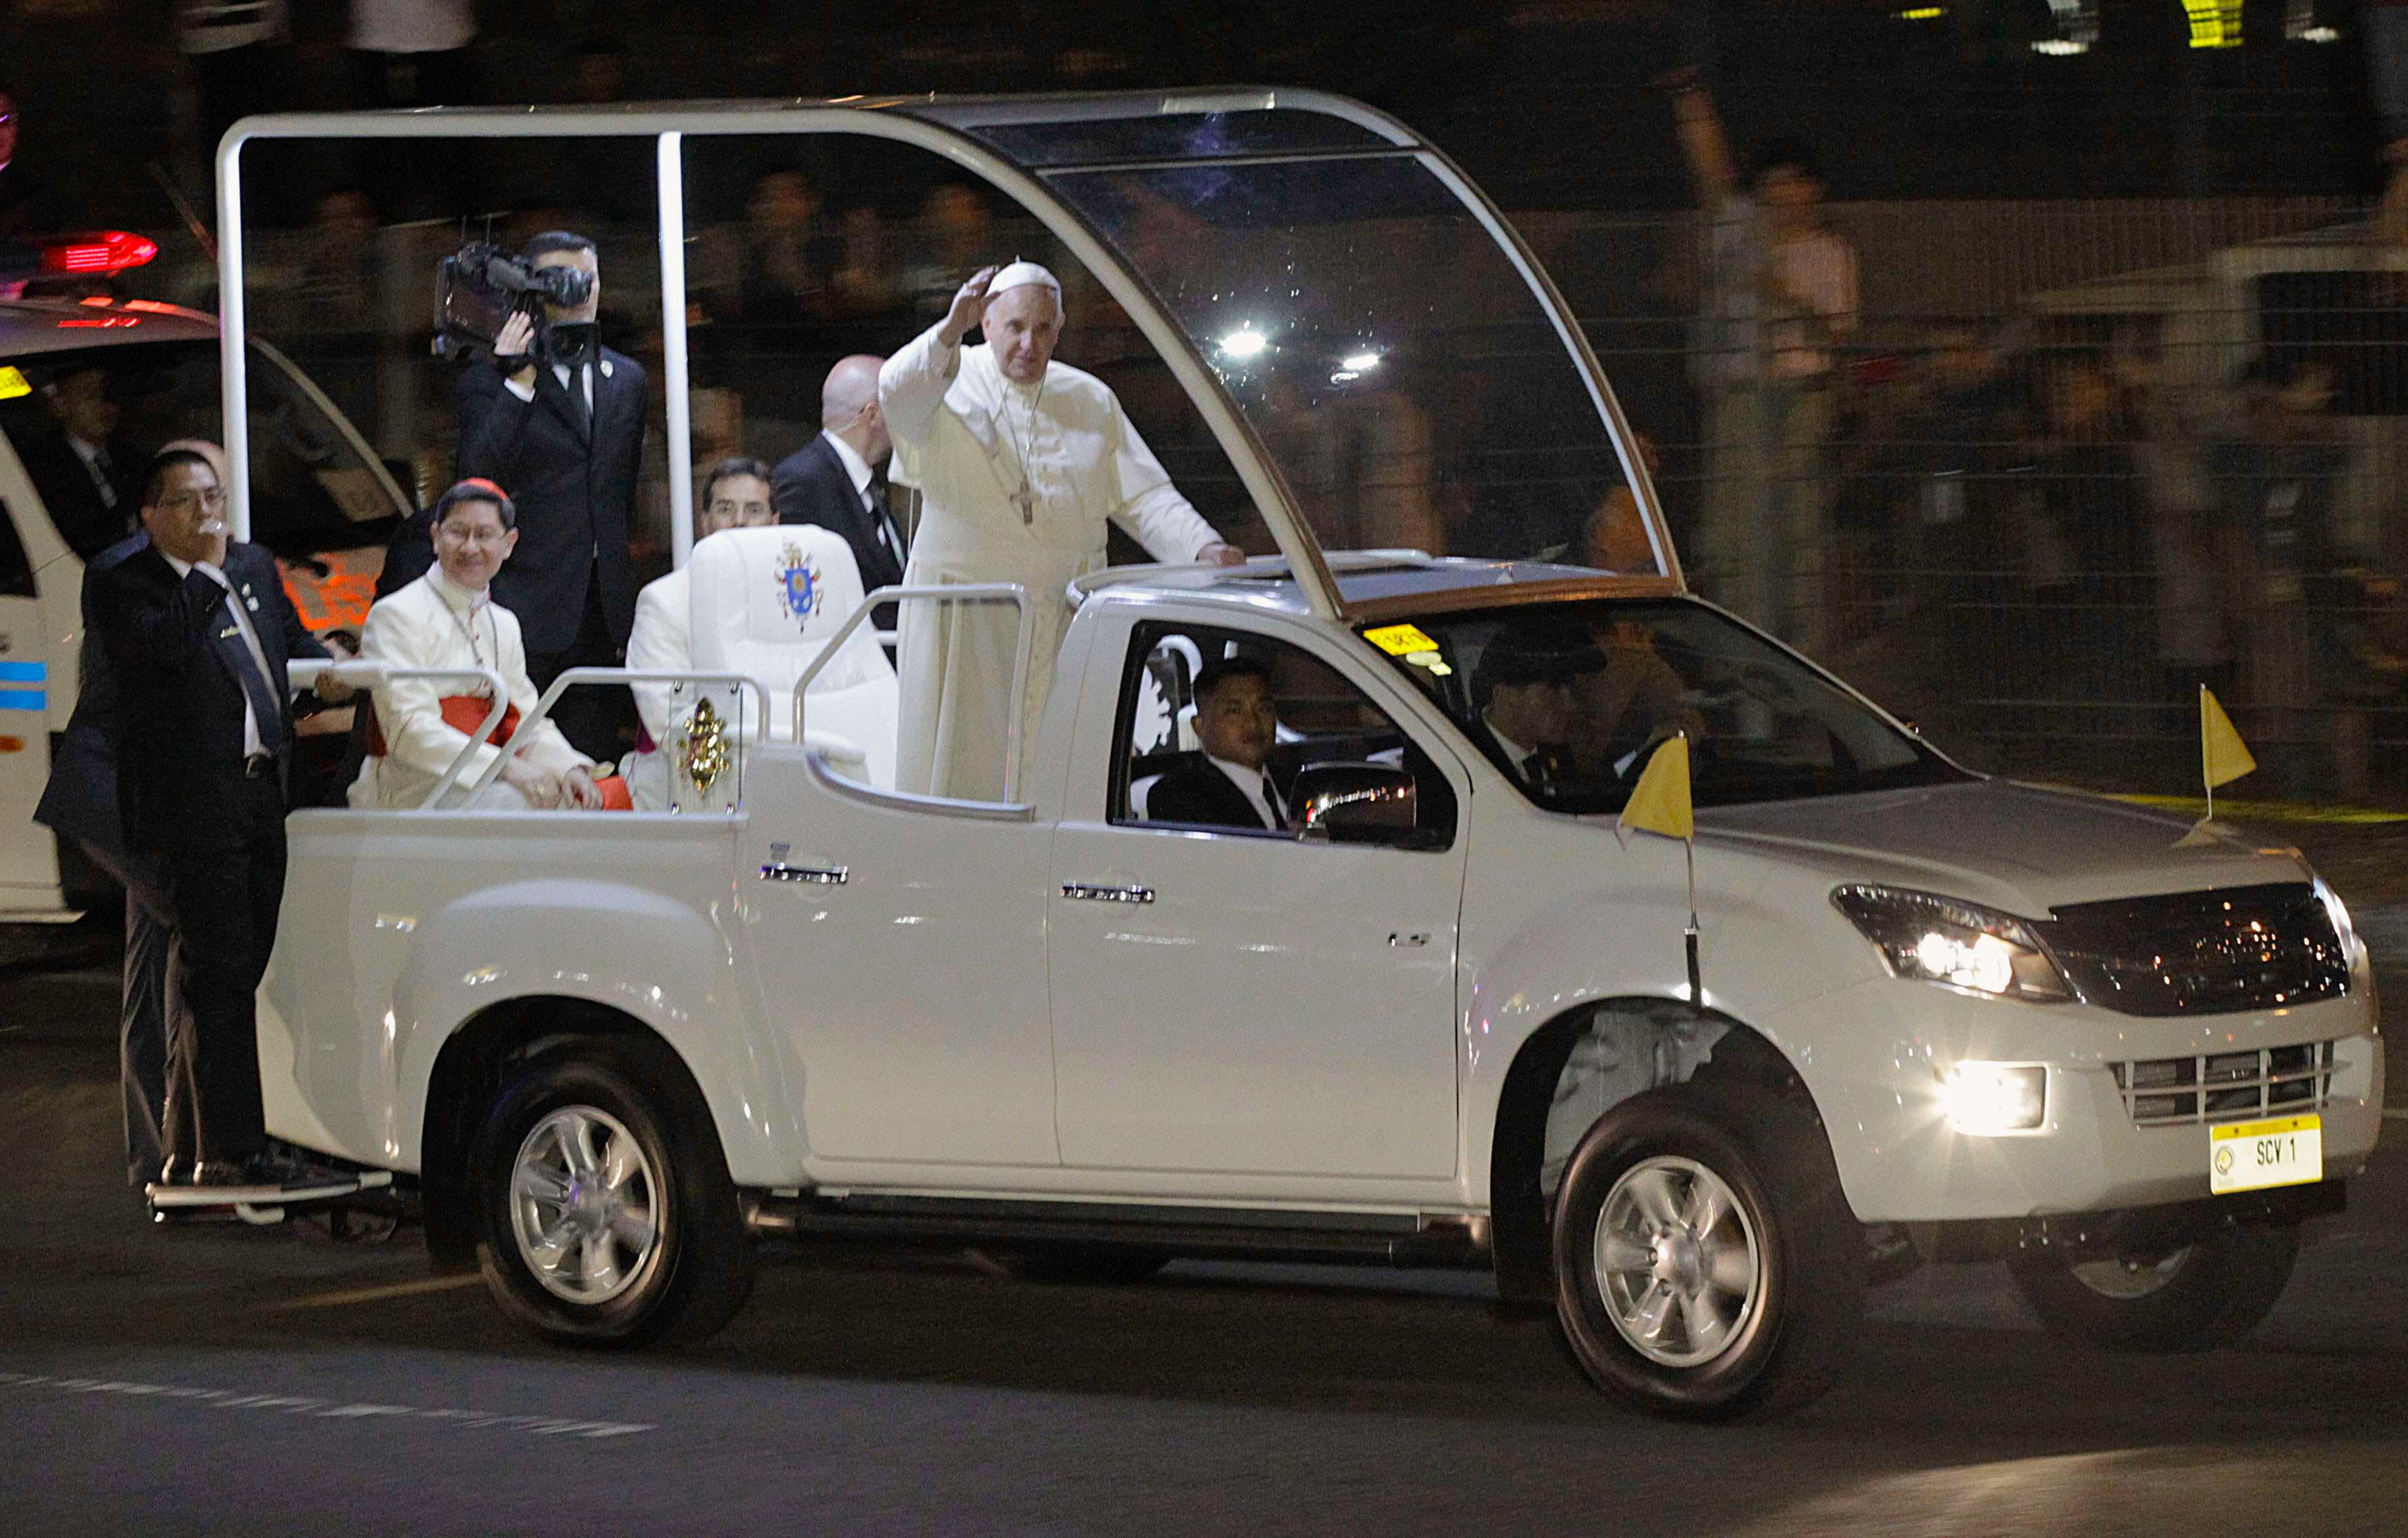 Pope visits the Philippines